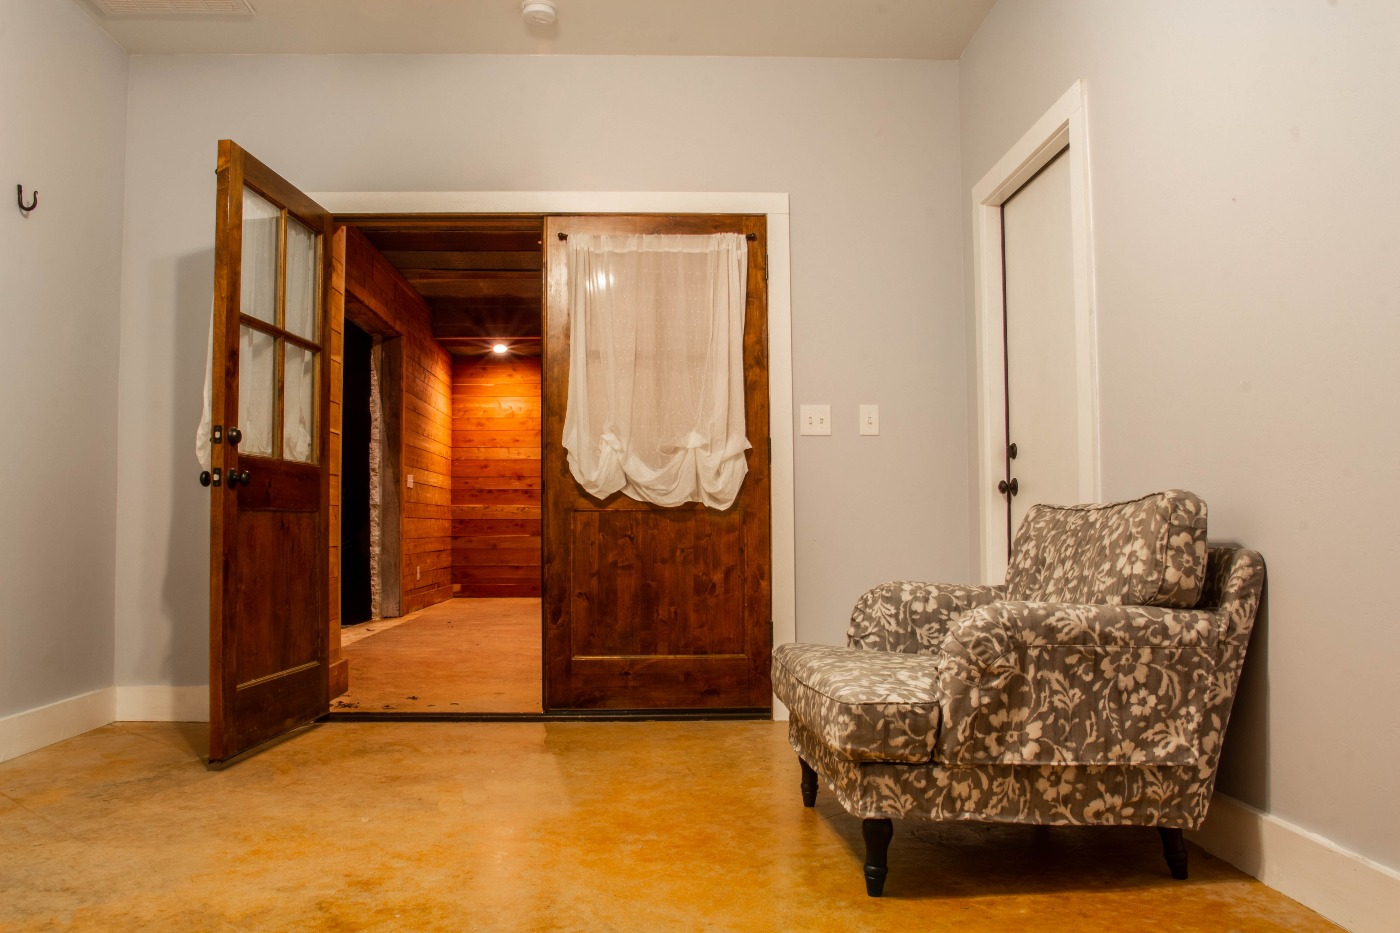 event center day2 l.jpg